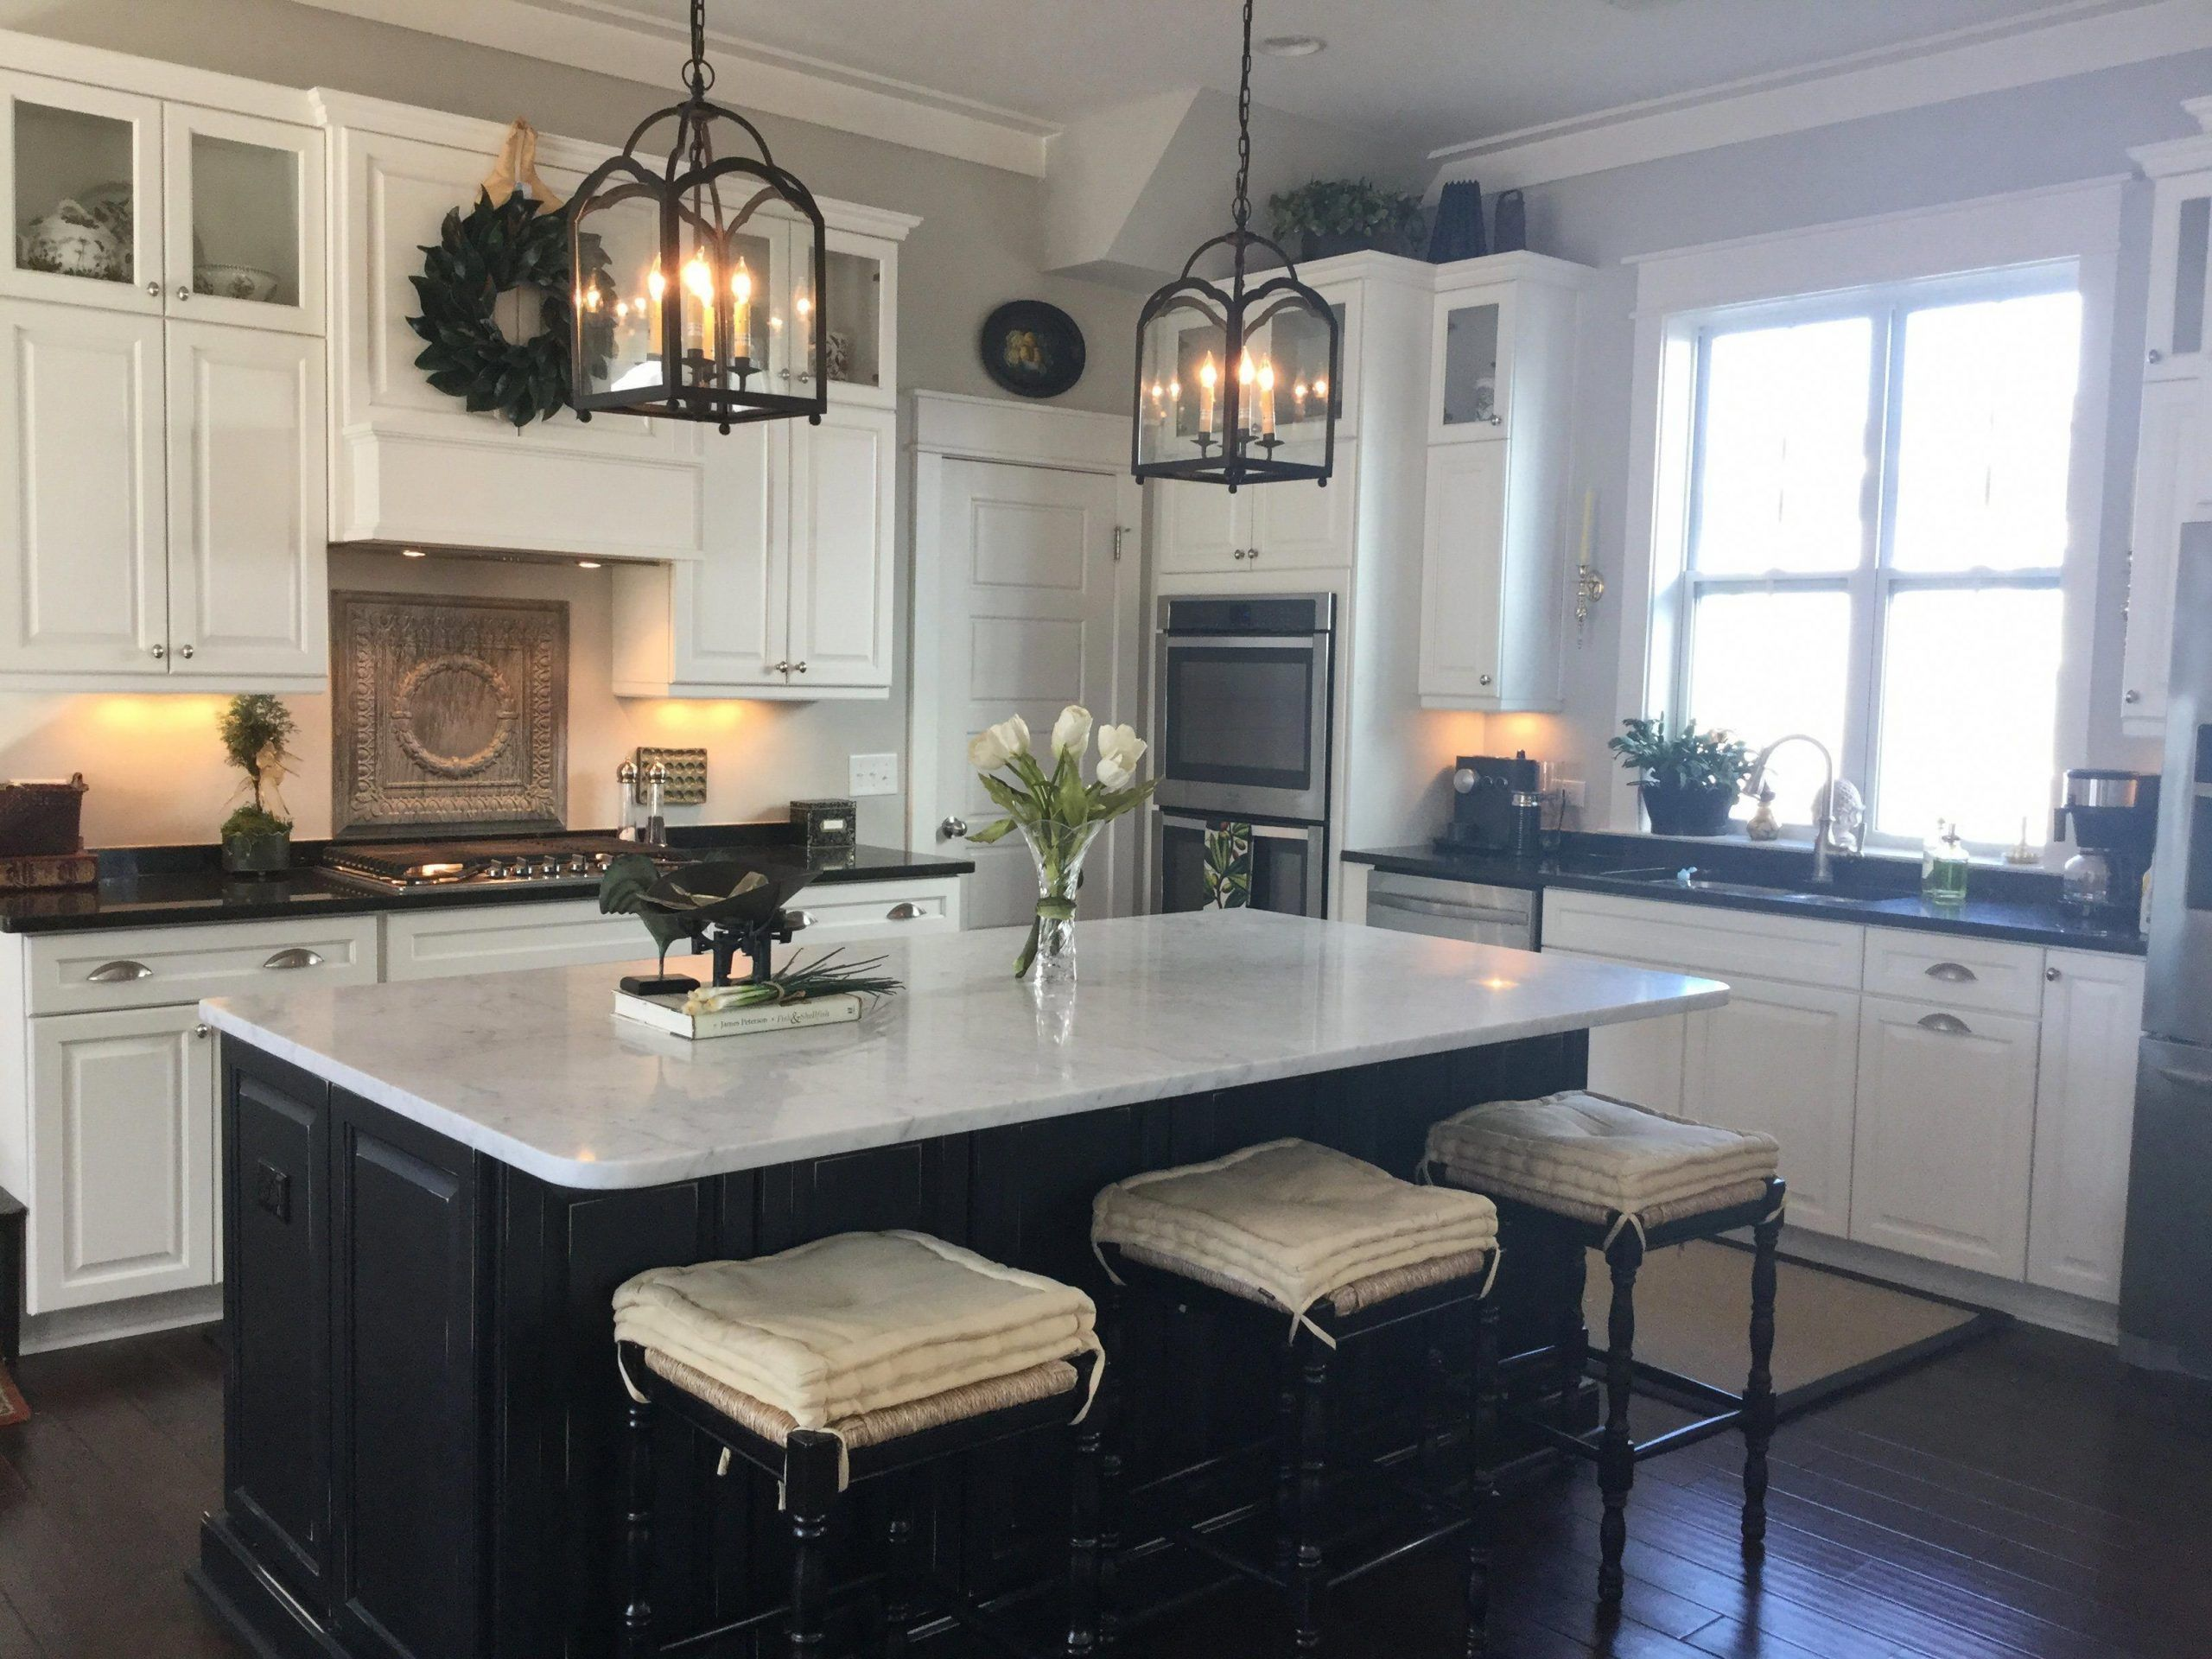 8 Skillful Ideas Narrow Galley Kitchen Remodel Colonial Kitchen Remodel Crown M Colonial Crown Ga In 2020 Kitchen Decor Trends Kitchen Remodel Home Decor Kitchen